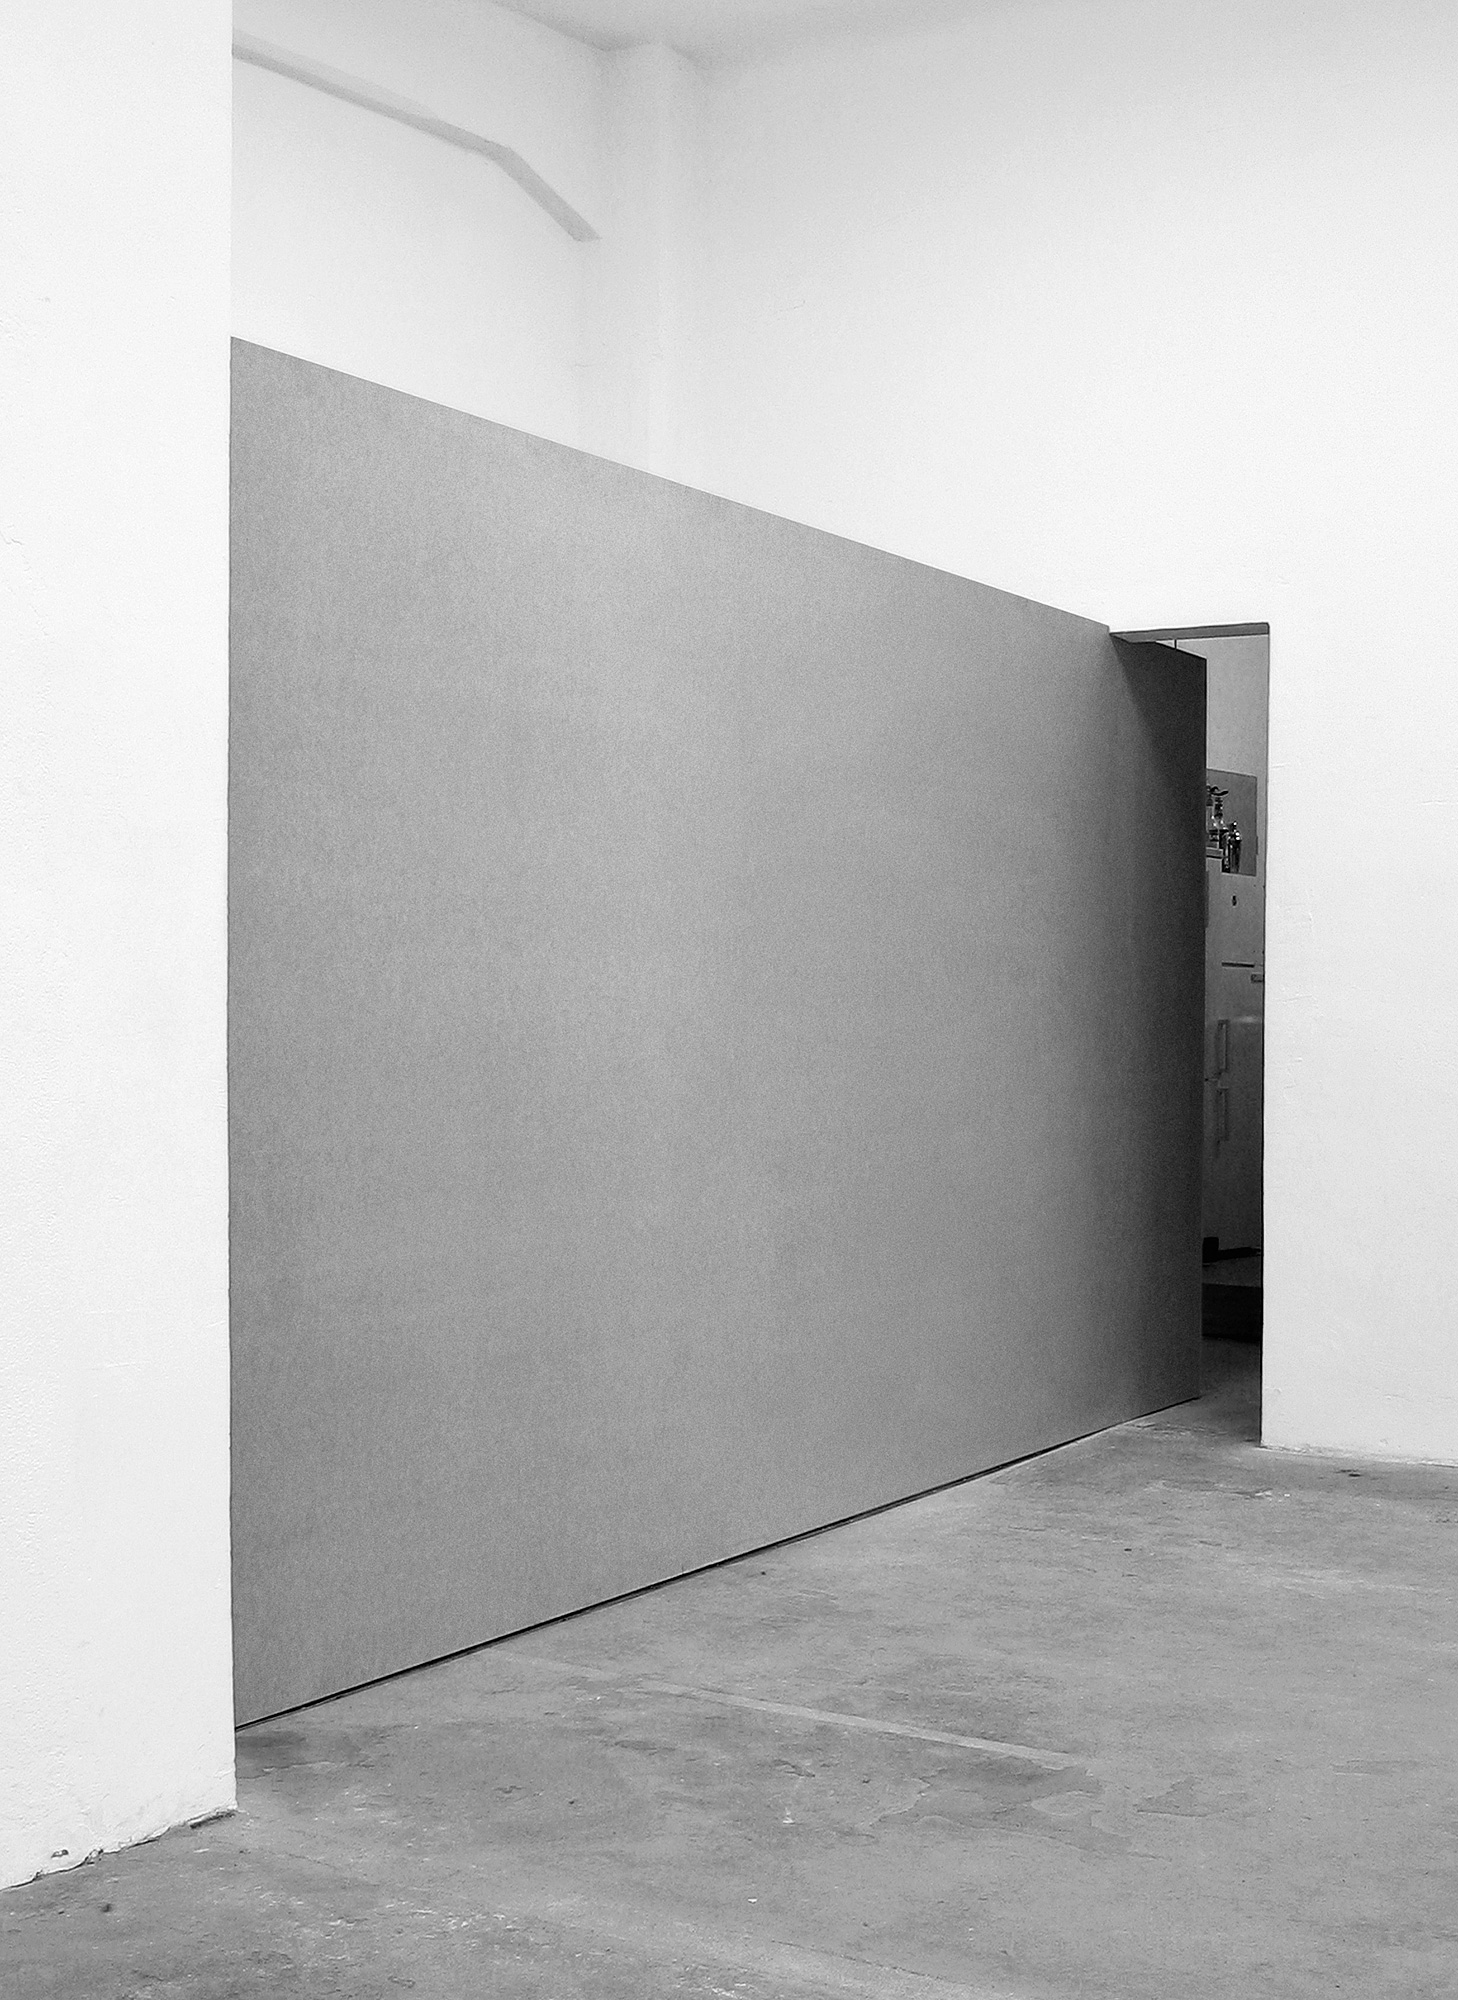 Famed, Untitled [Spatial Reconfiguration #2], 2004